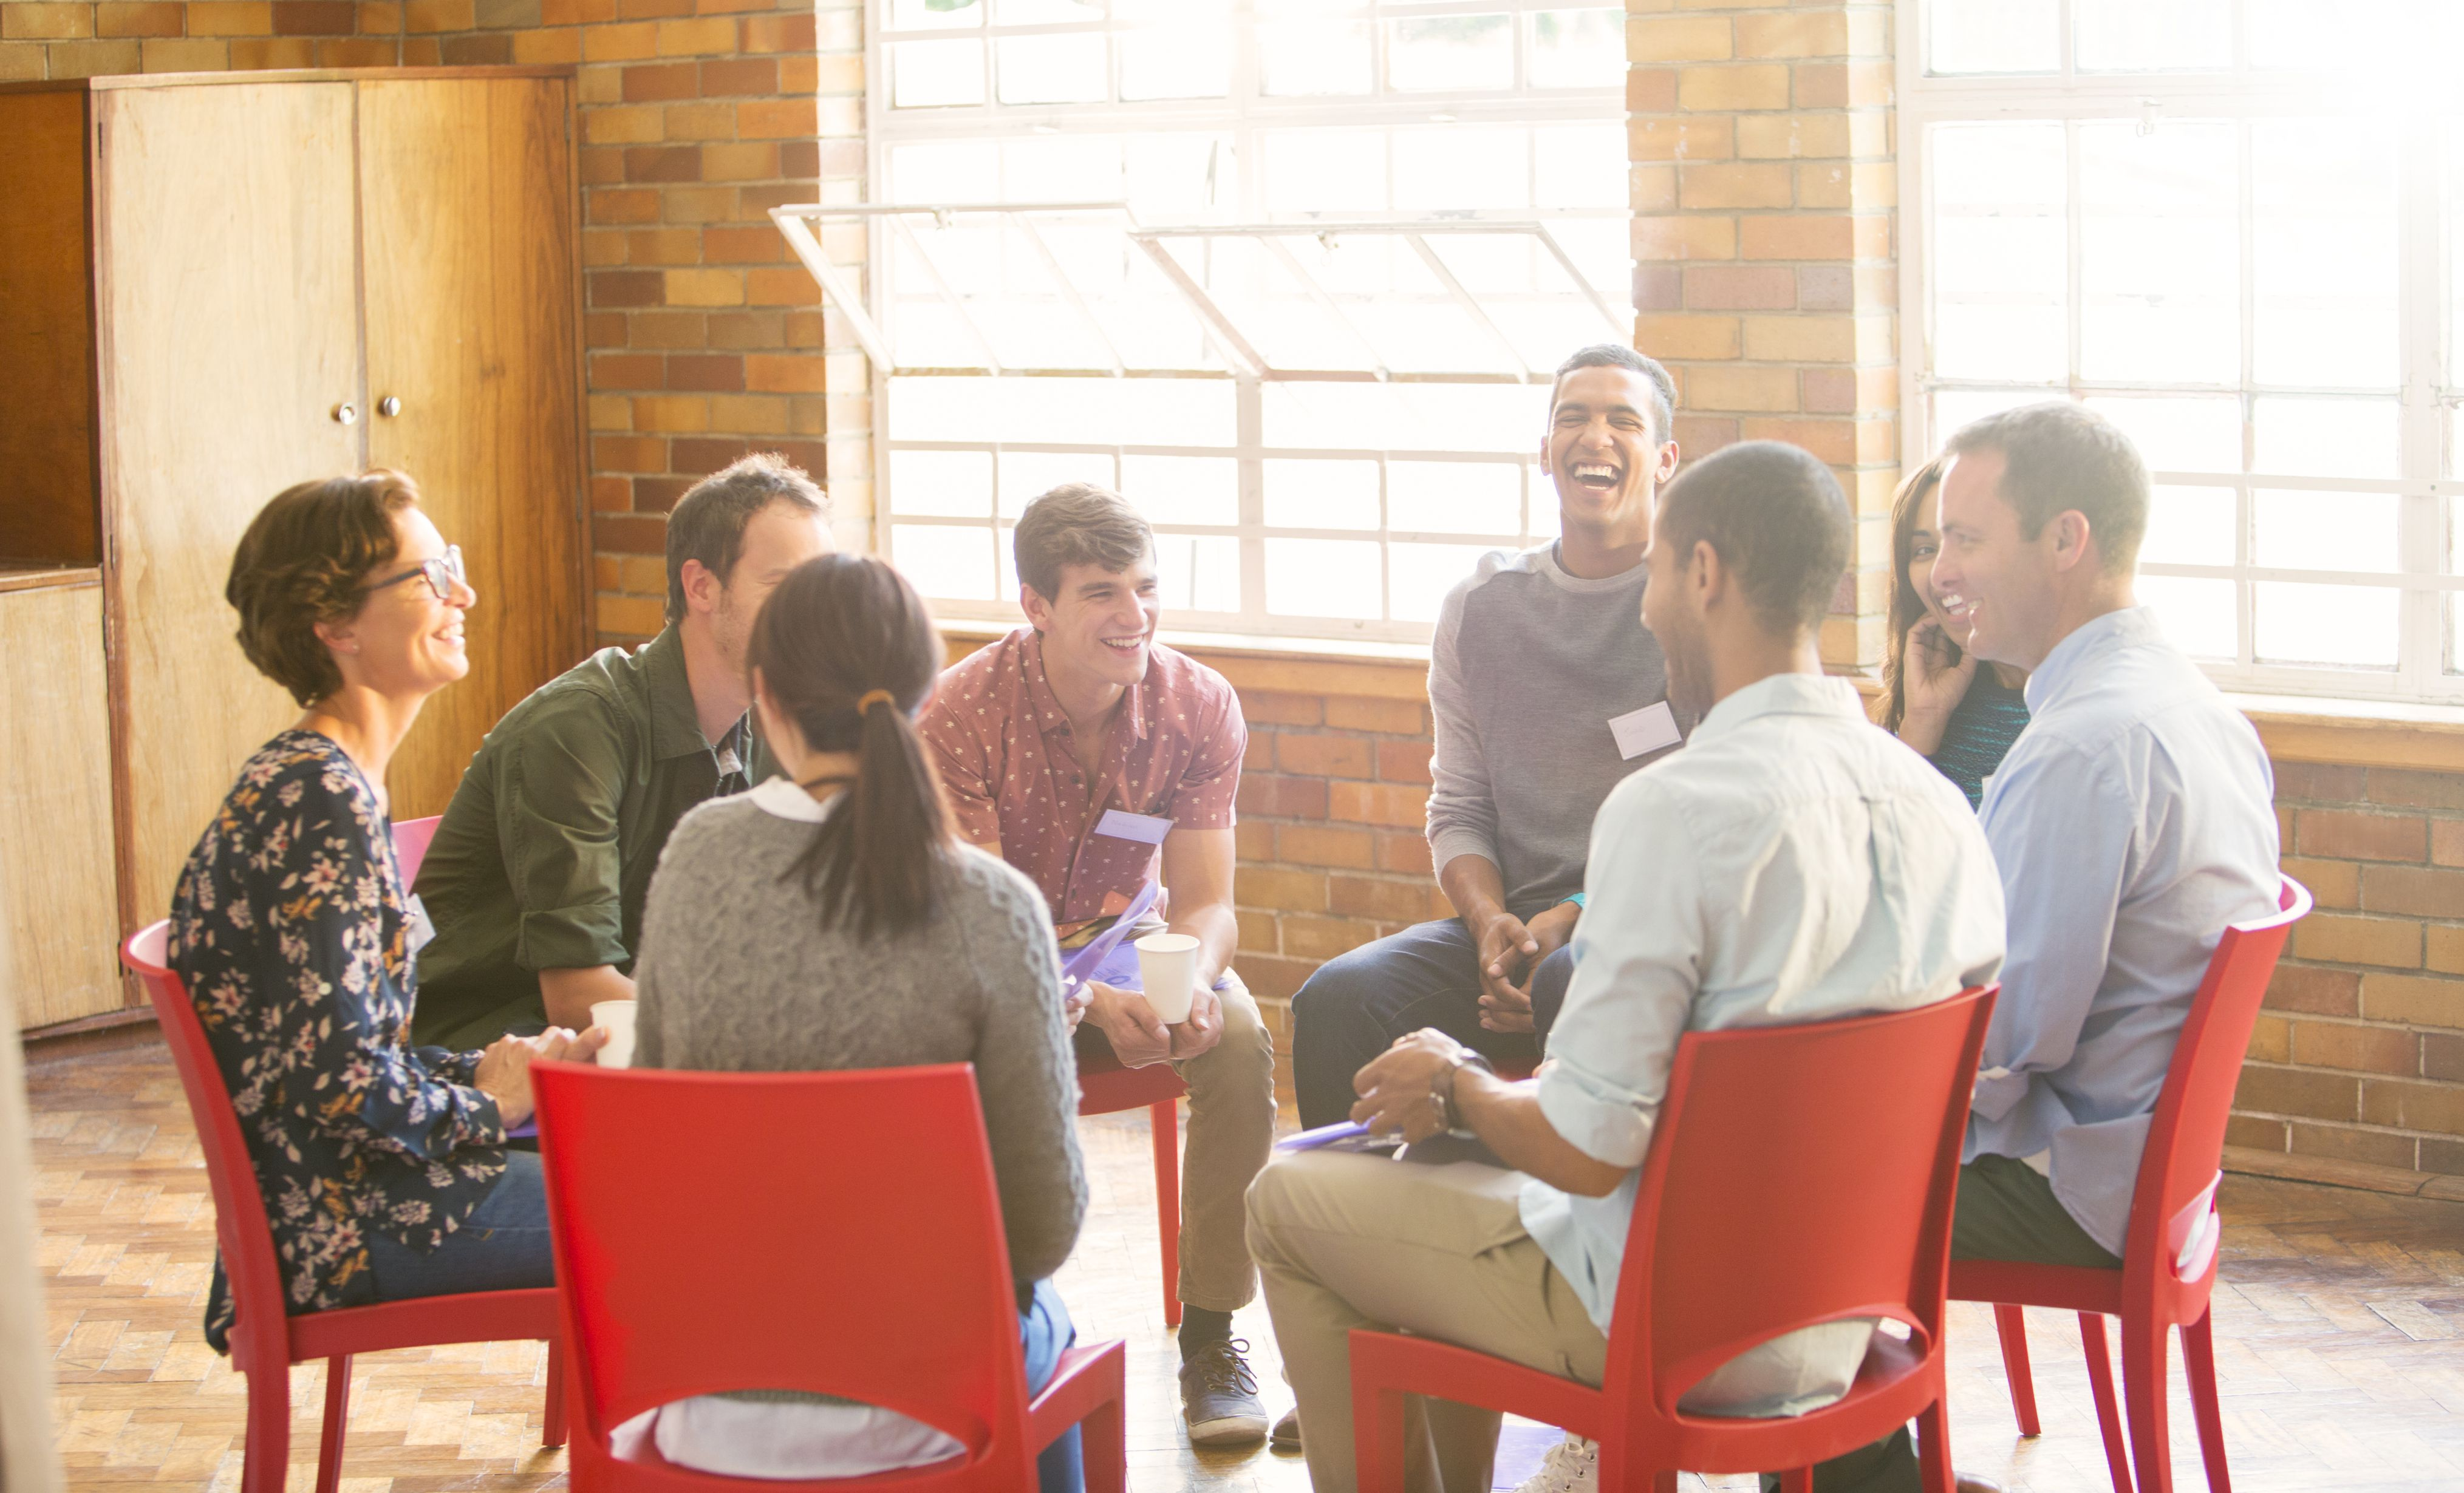 Support group laughing and talking in a circle in bright brick room